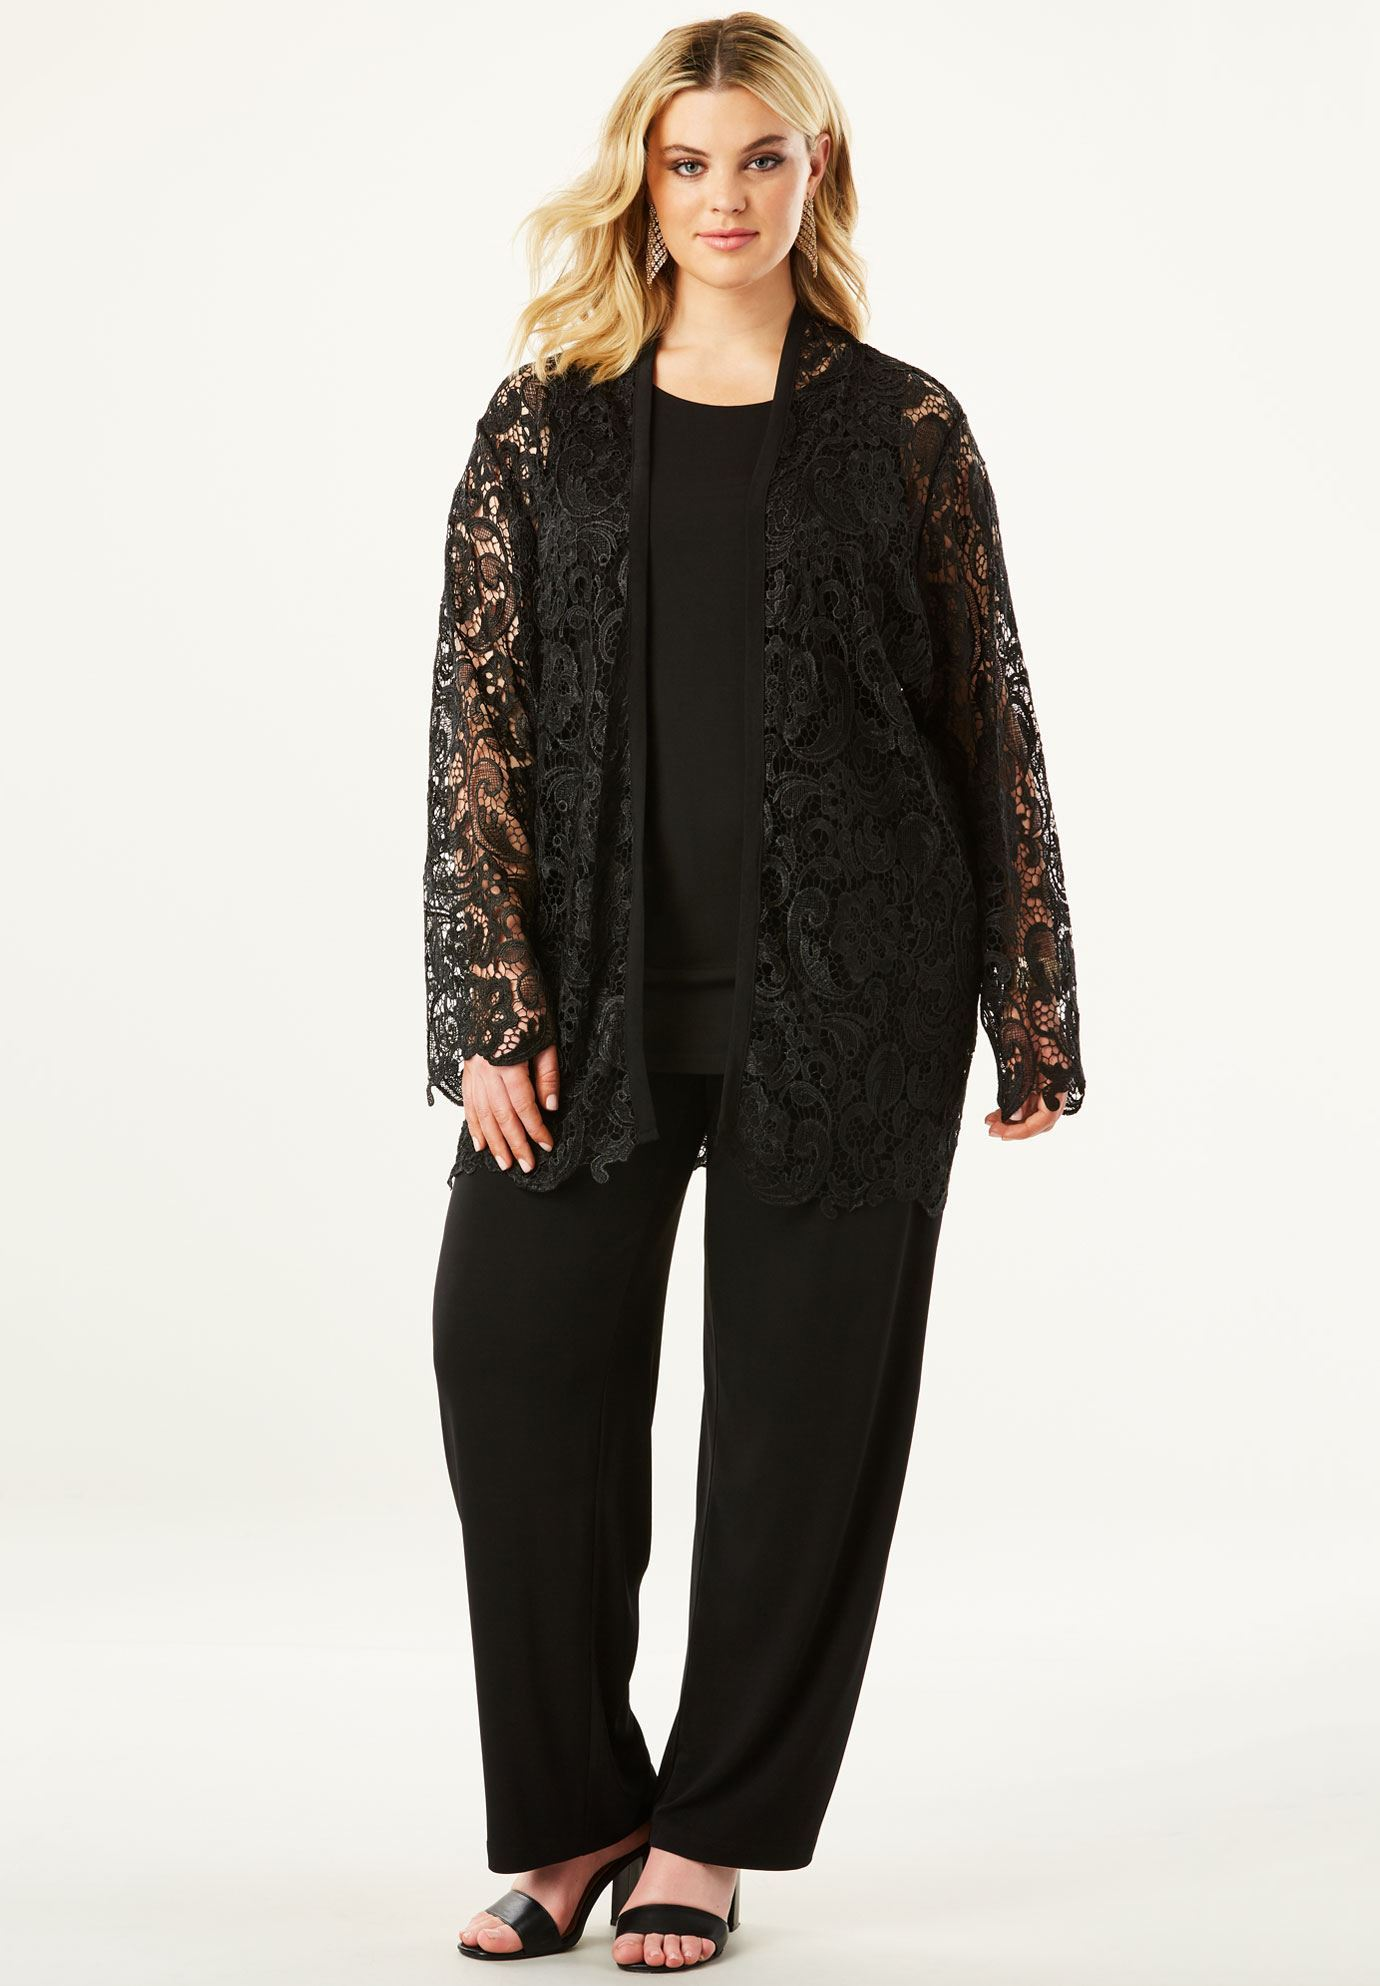 3-Piece Pant Set with Lace Jacket,